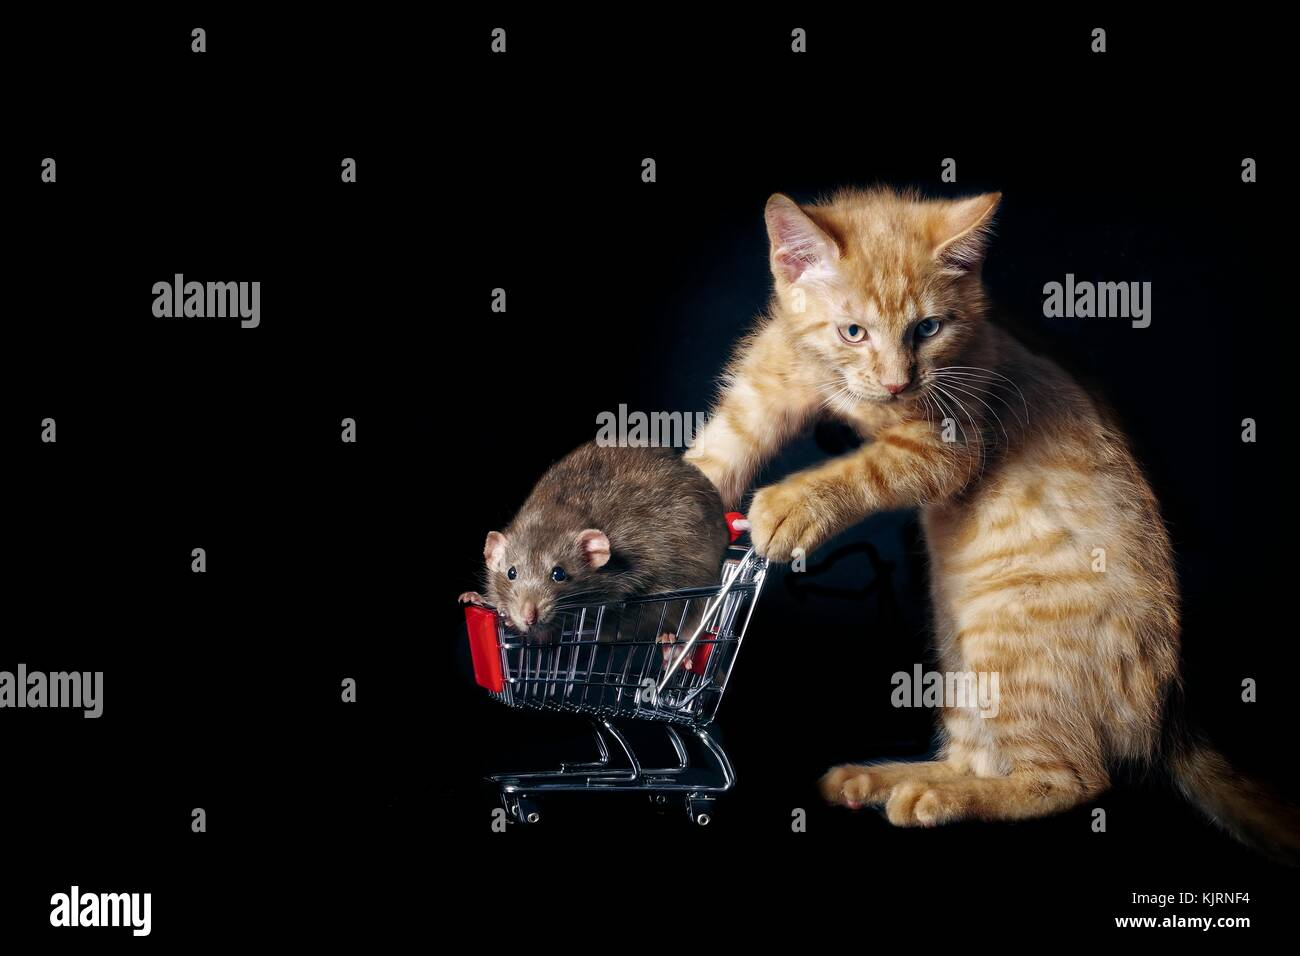 funny tabby cat push a shopping cart with a pet rat in it. - Stock Image